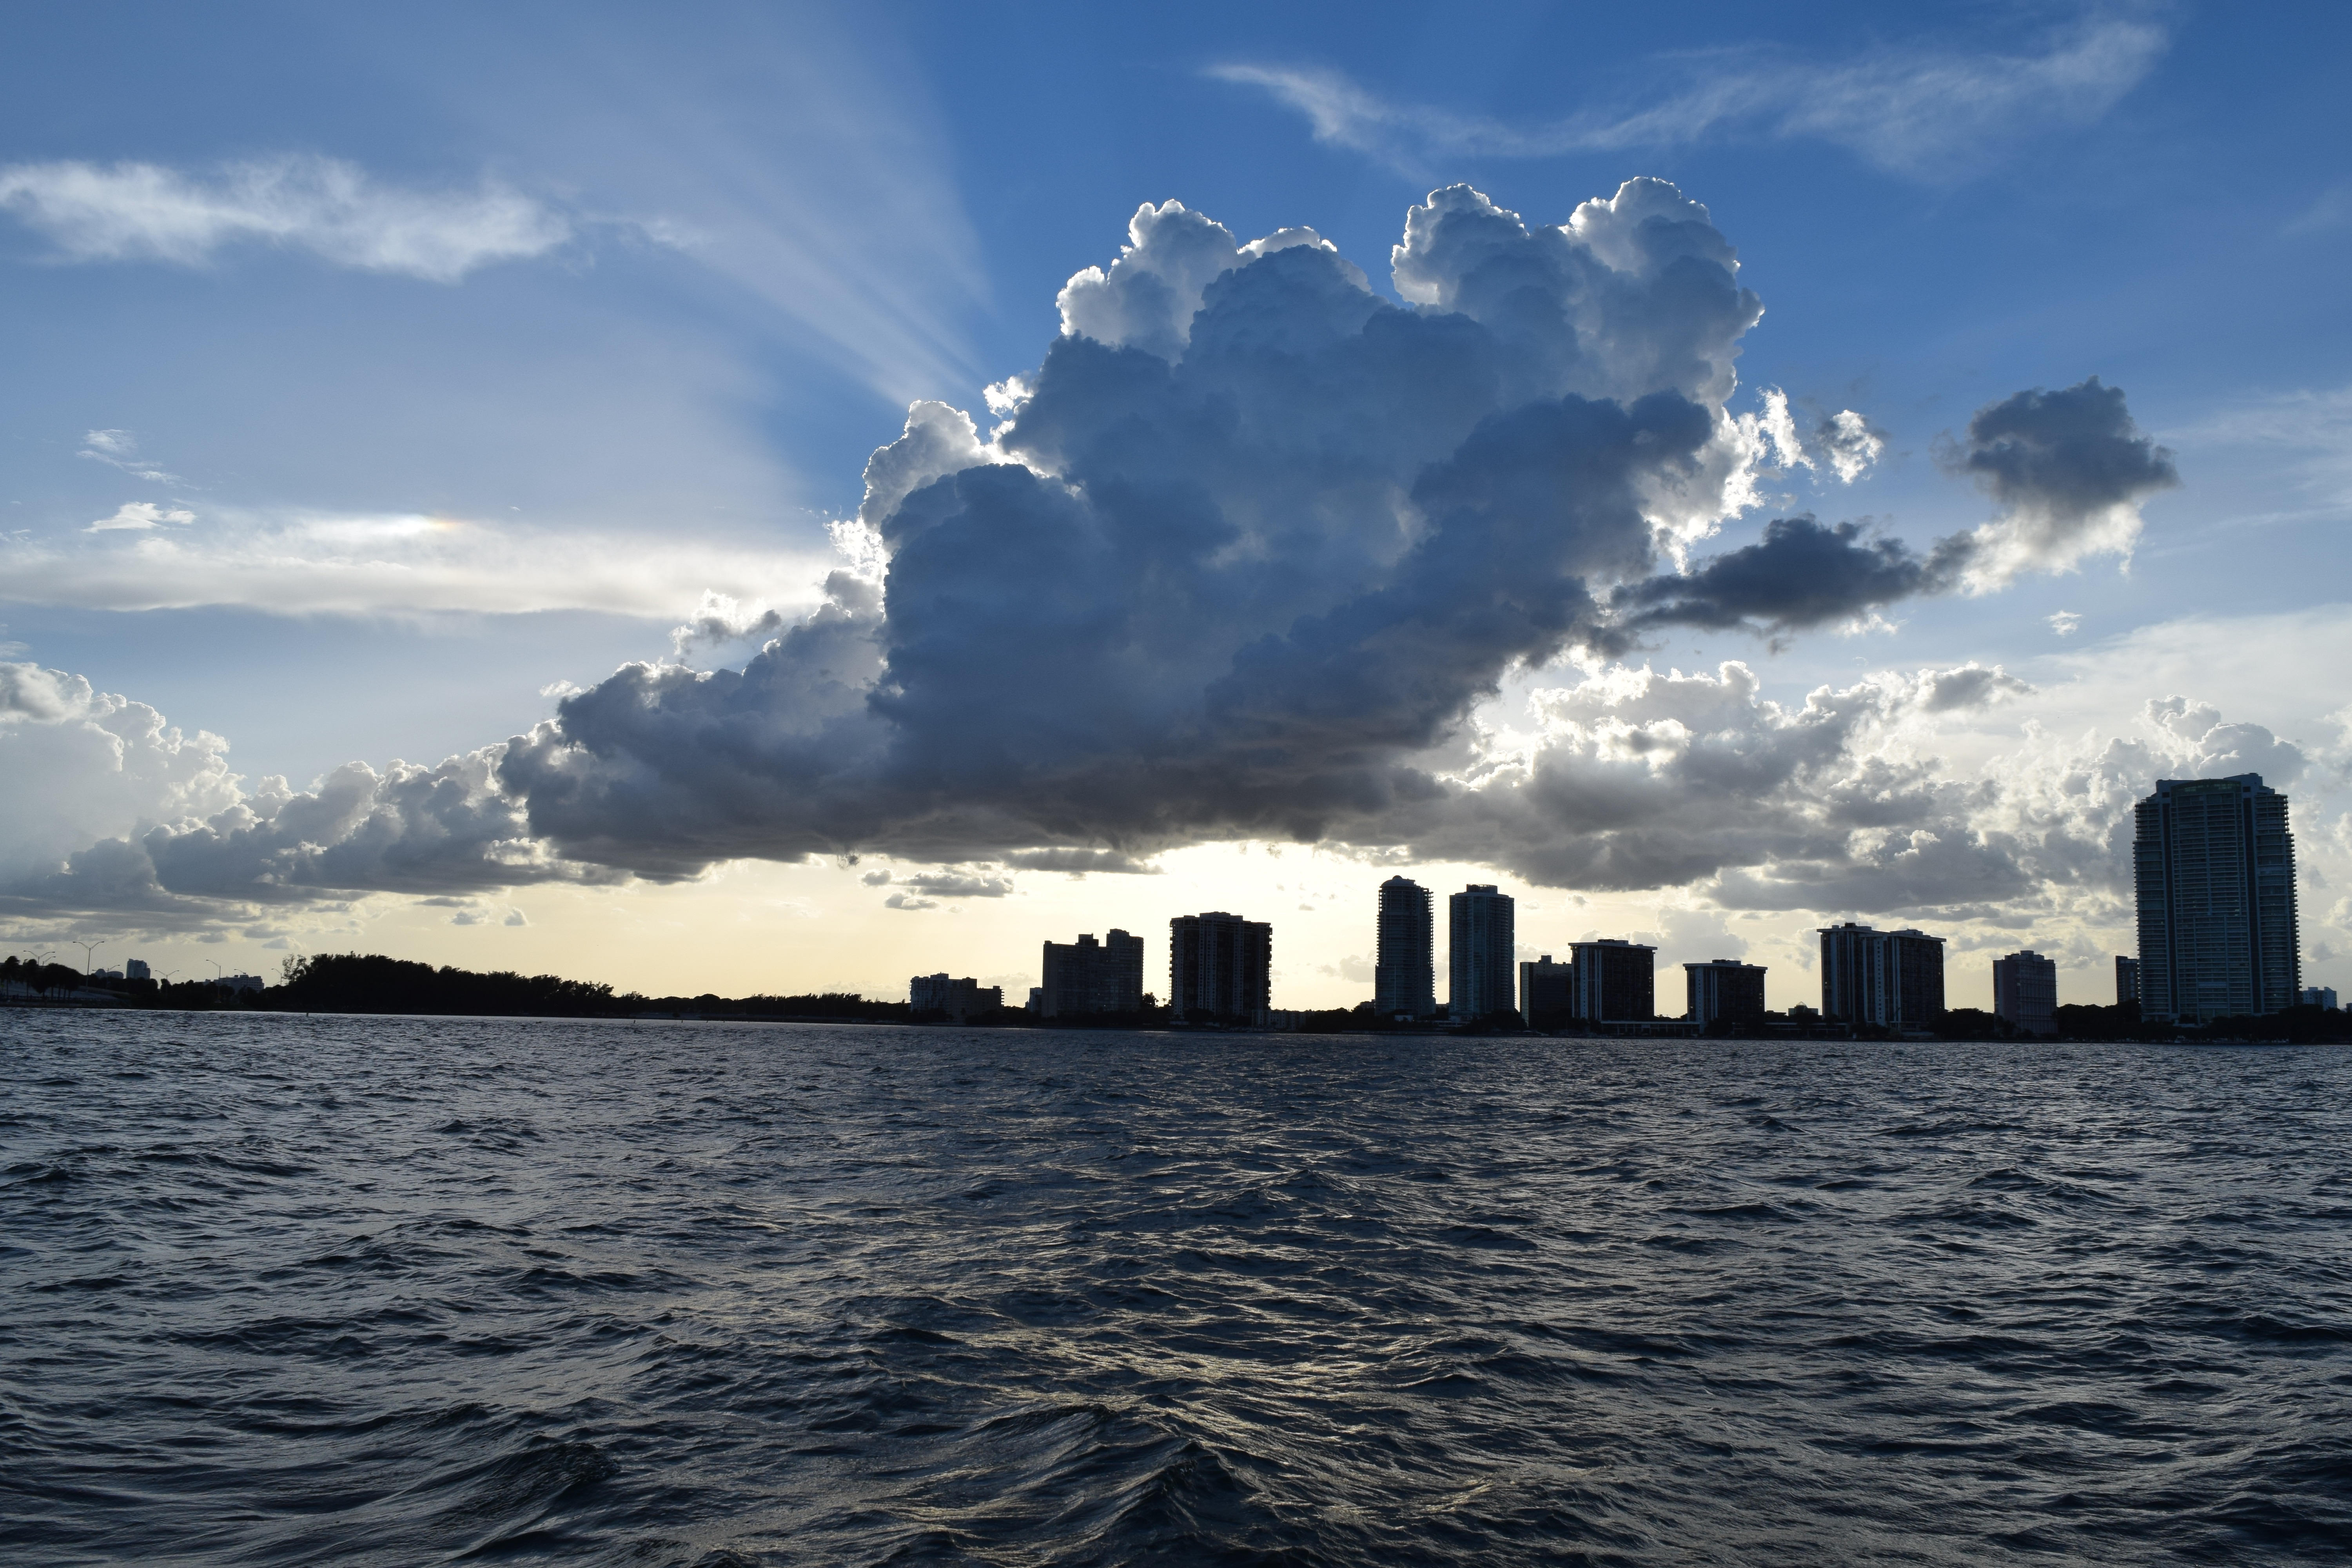 A shot of Miami from Biscayne Bay